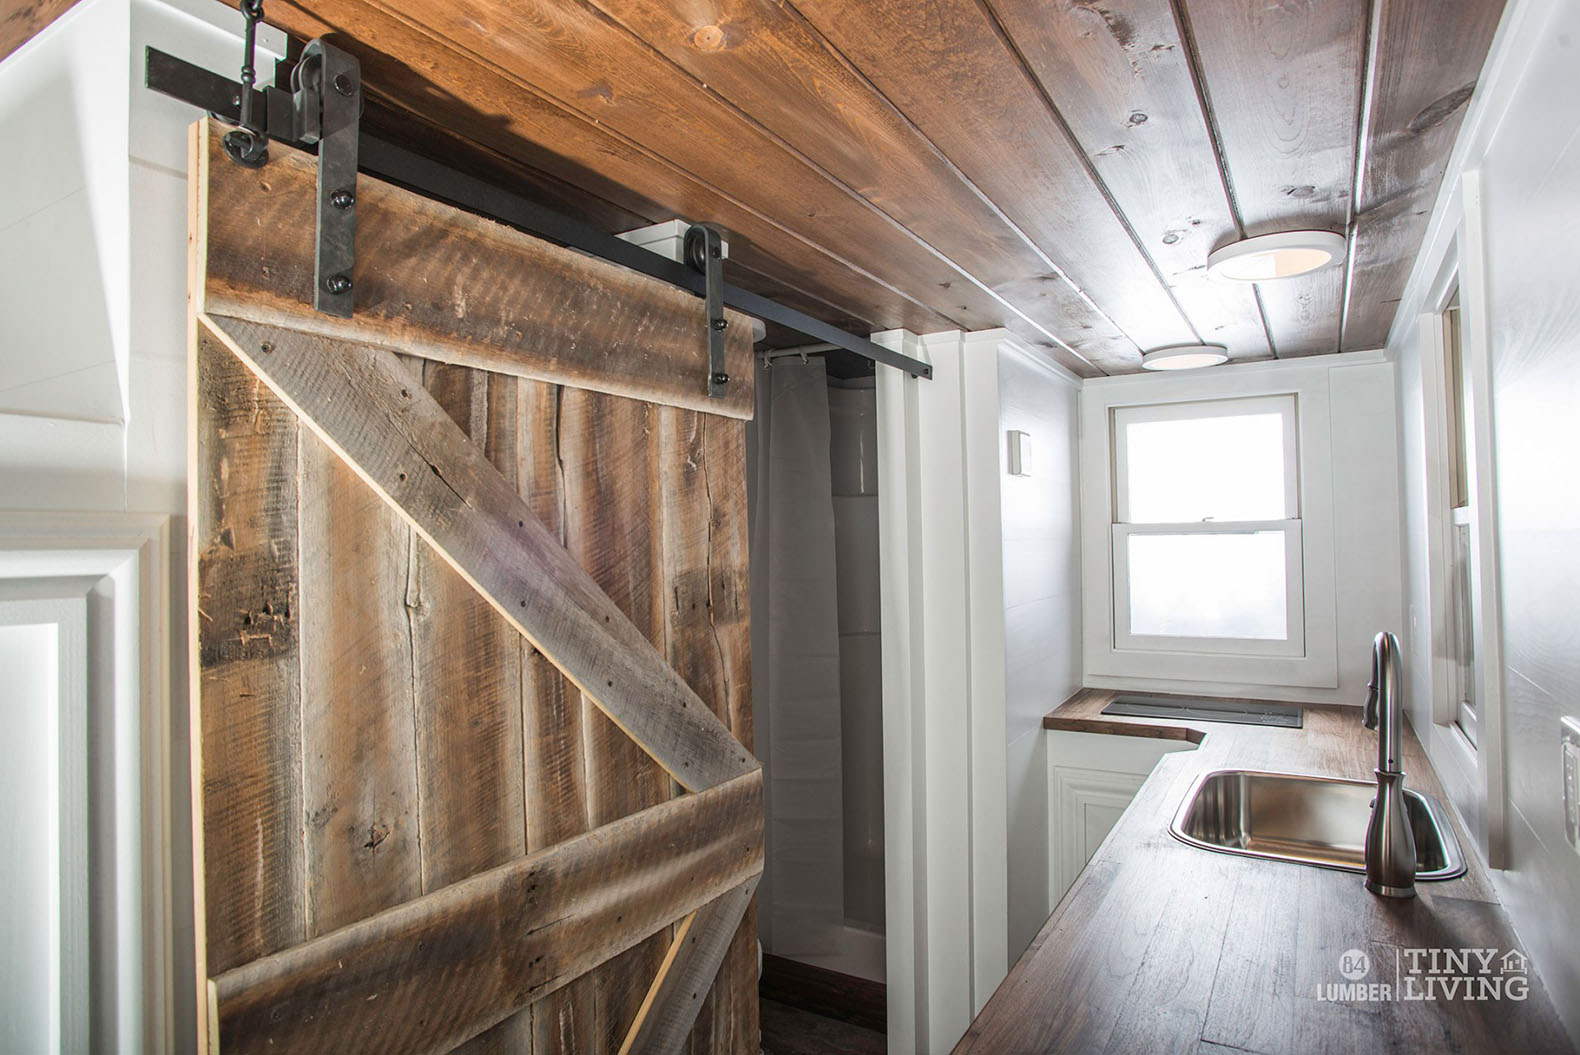 Do It Yourself Home Design: 84 Lumber Launches Gorgeous Tiny Homes That You Can Buy Or